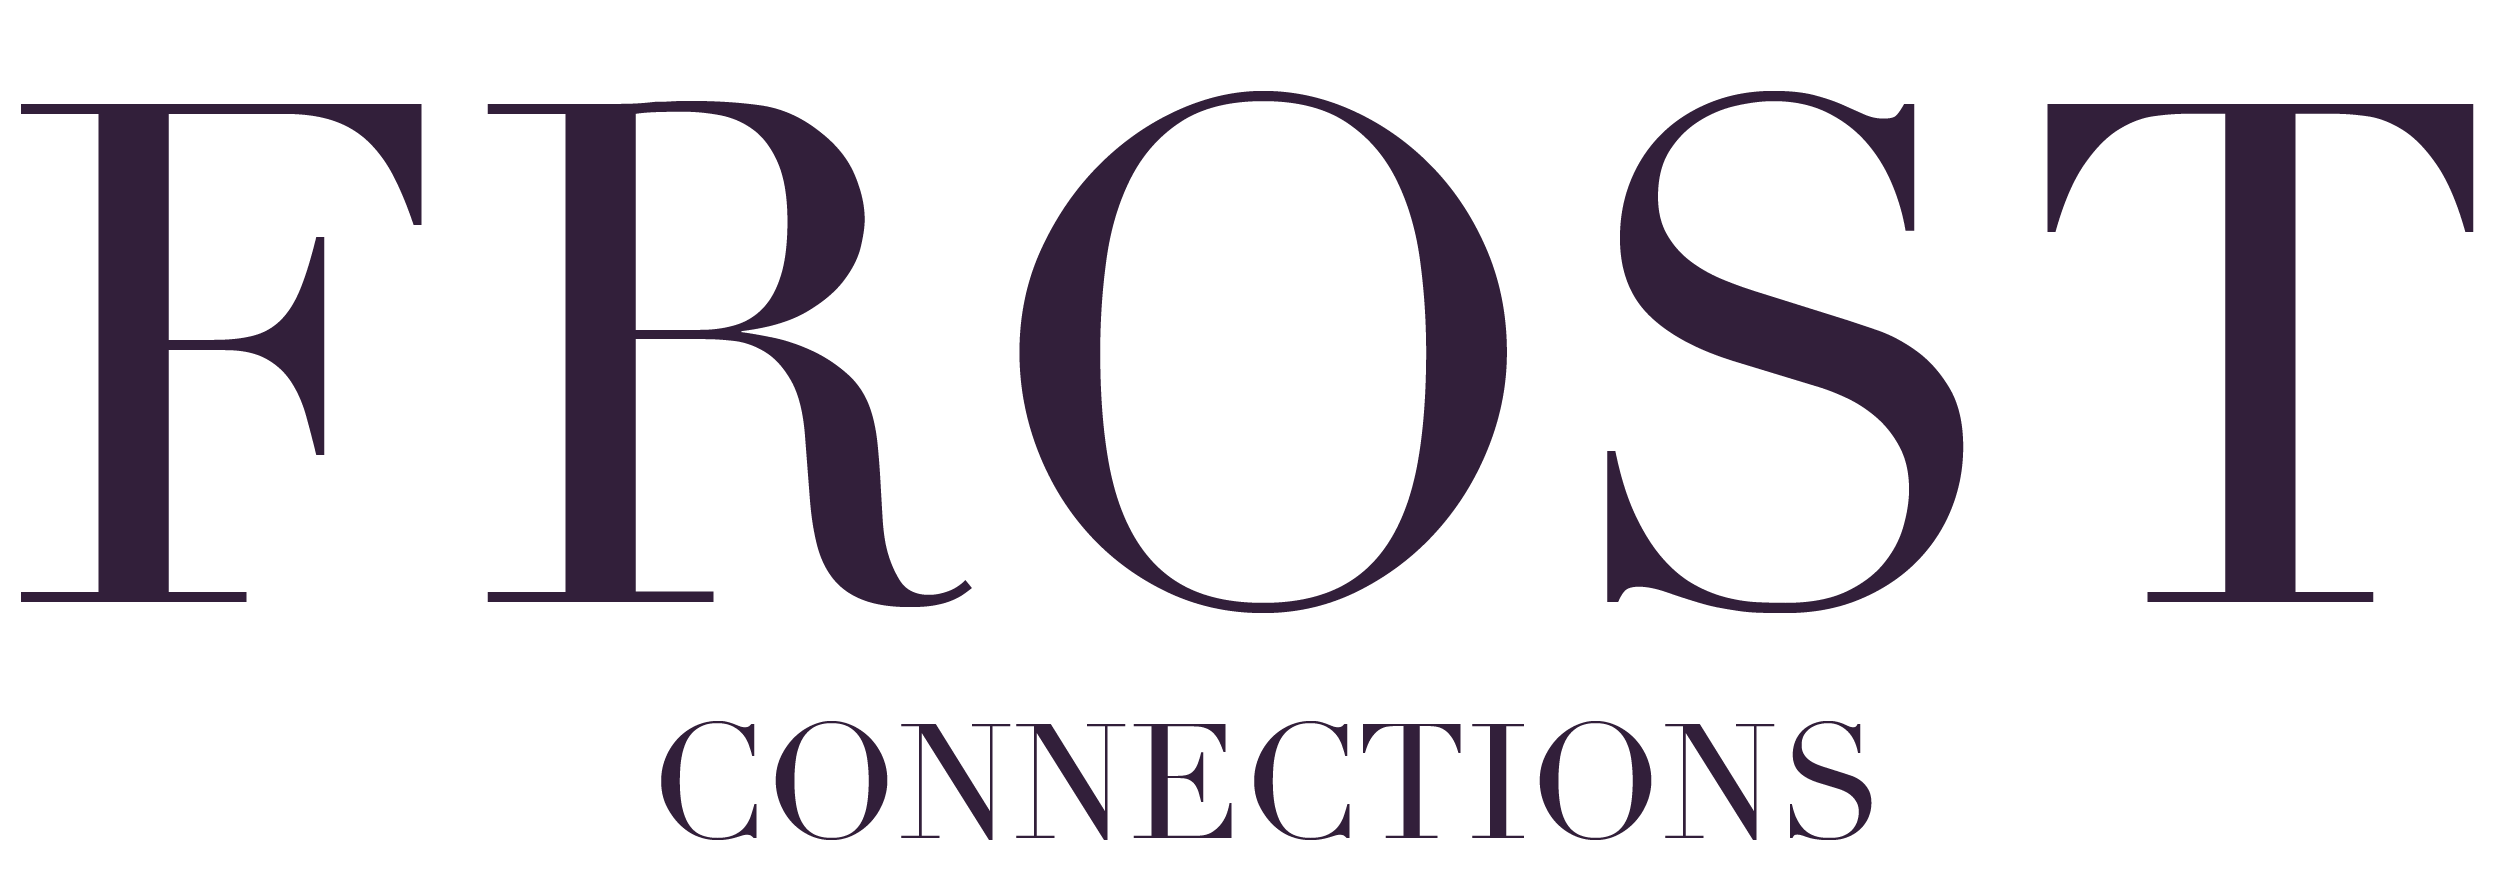 Frost Connections